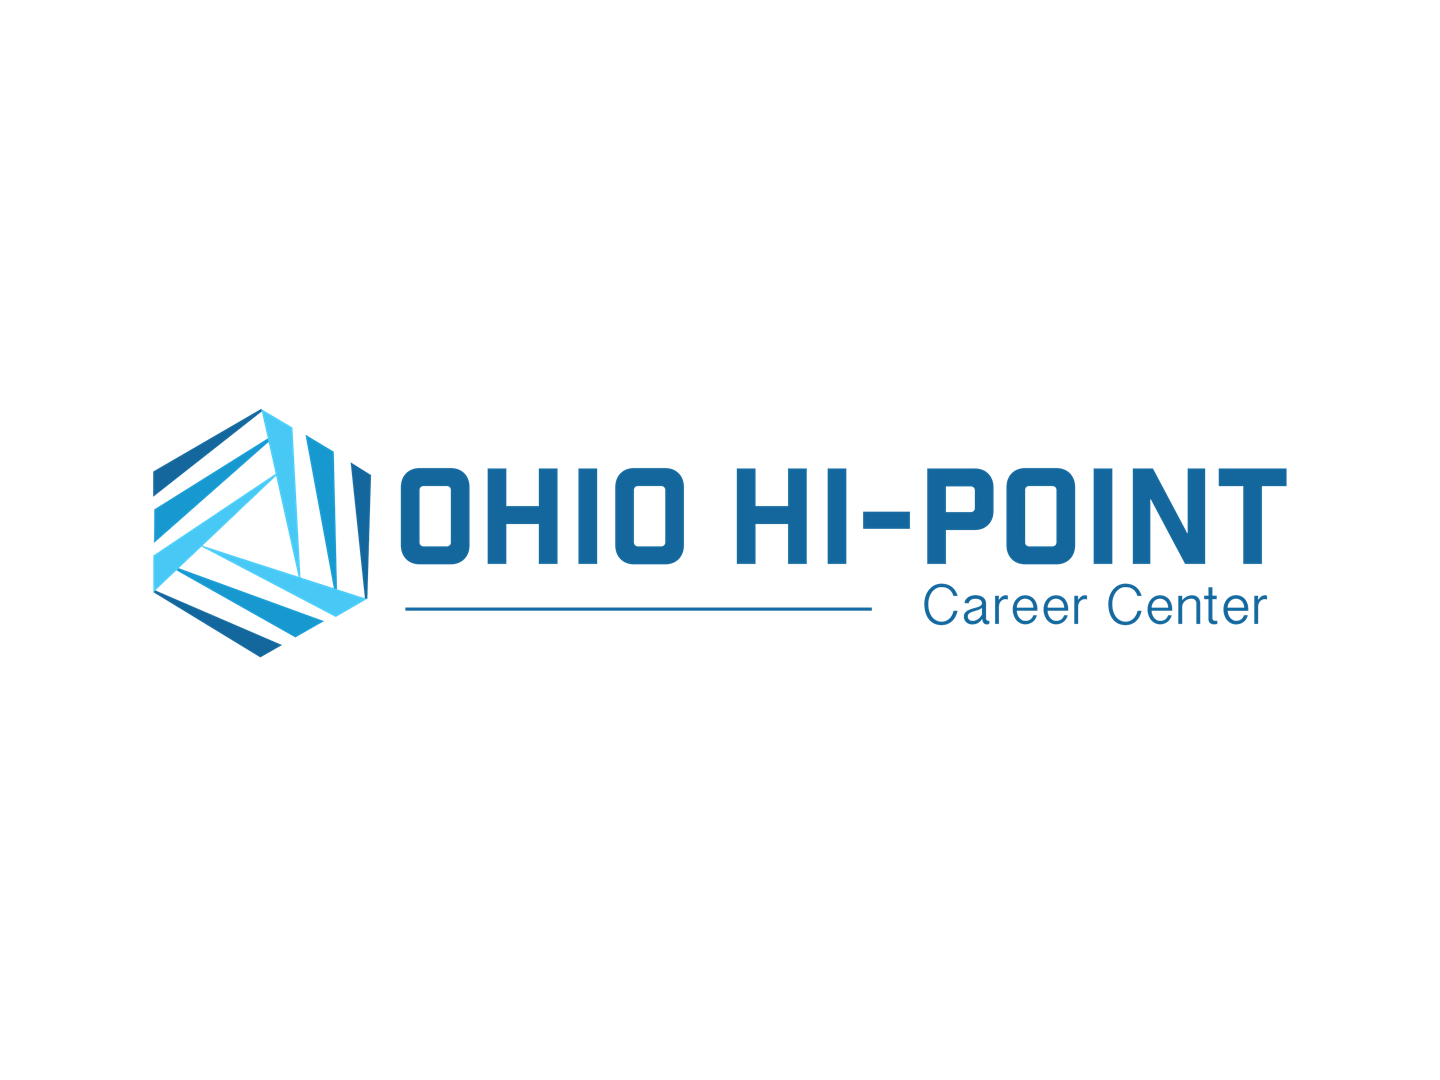 ohio hi point logo